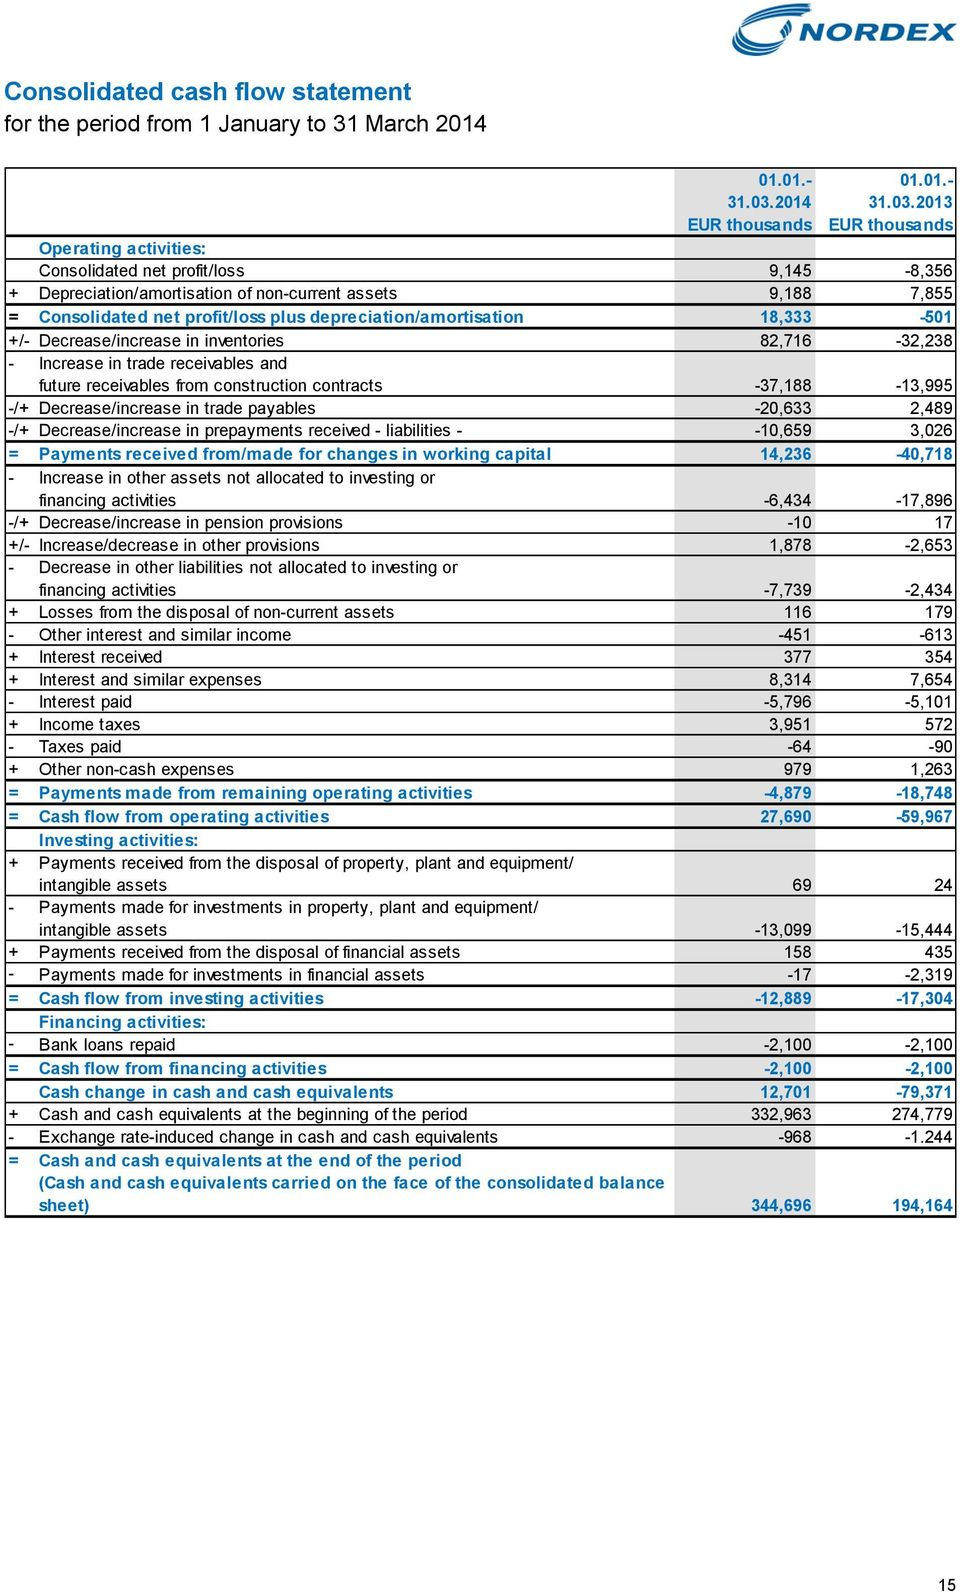 2013 EUR thousands EUR thousands Operating activities: Consolidated net profit/loss 9,145-8,356 + Depreciation/amortisation of non-current assets 9,188 7,855 = Consolidated net profit/loss plus